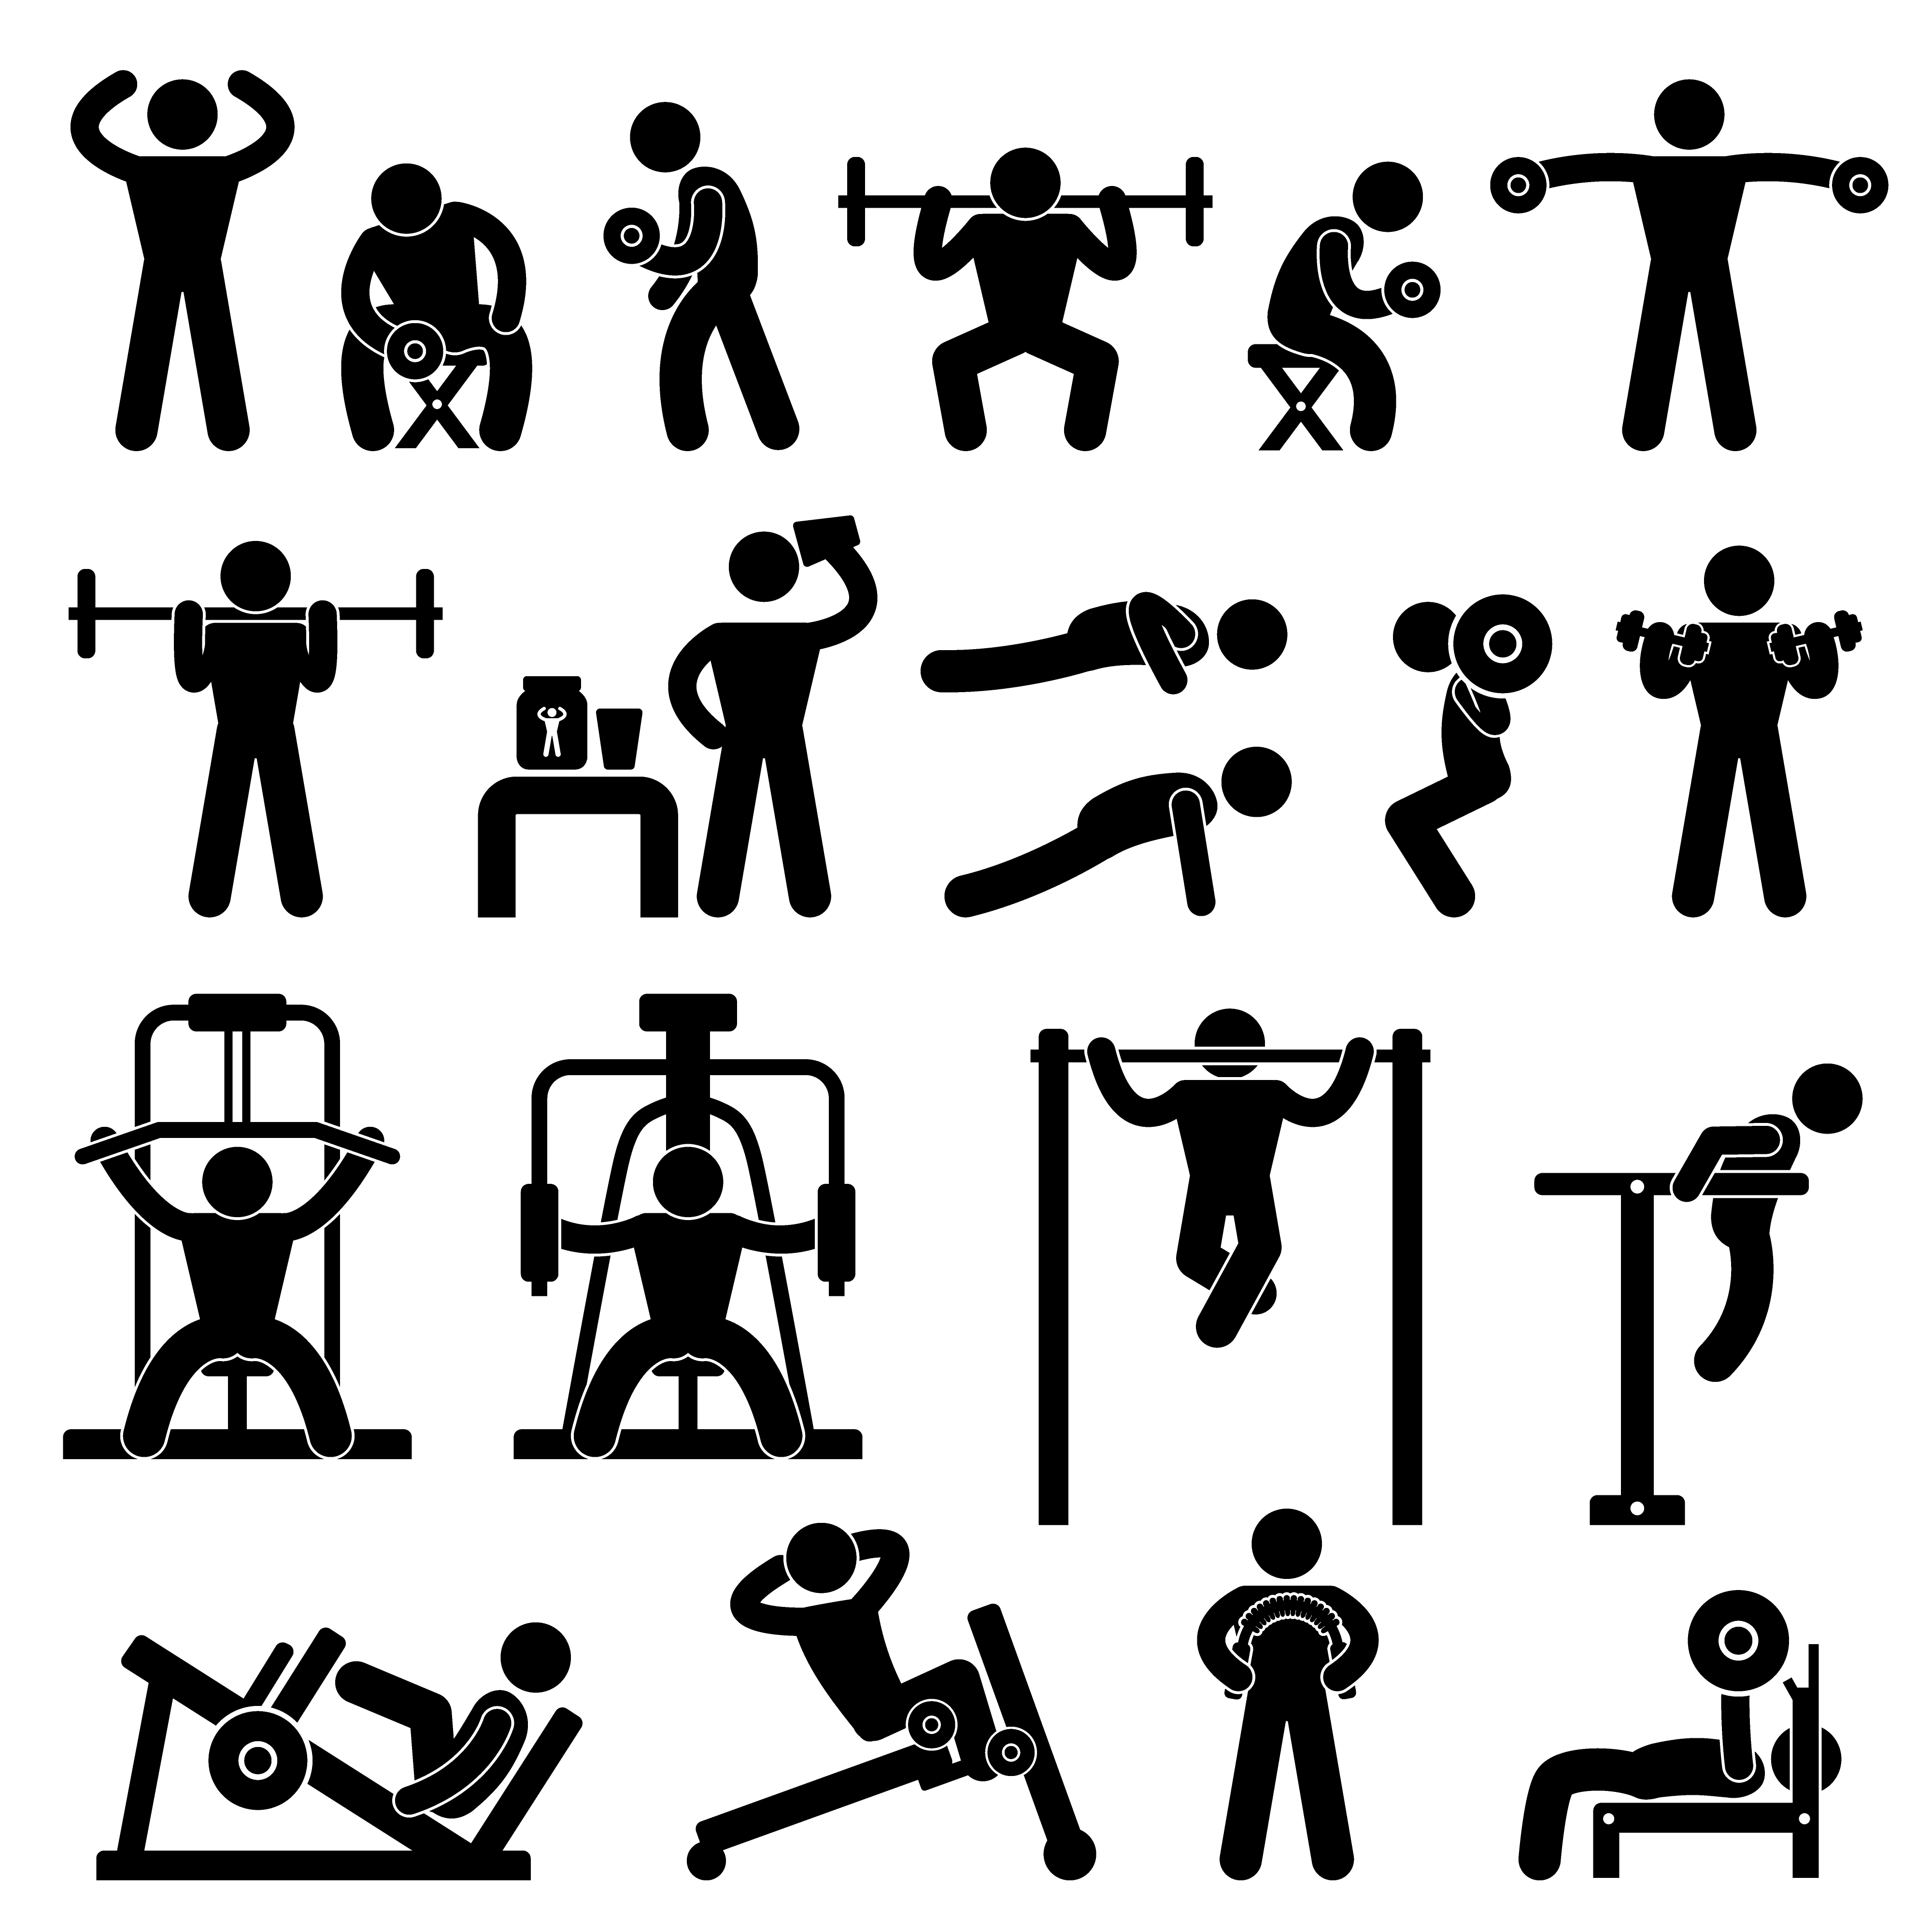 Gym Gymnasium Body Building Exercise Training Fitness Workout Download Free Vectors Clipart Graphics Vector Art